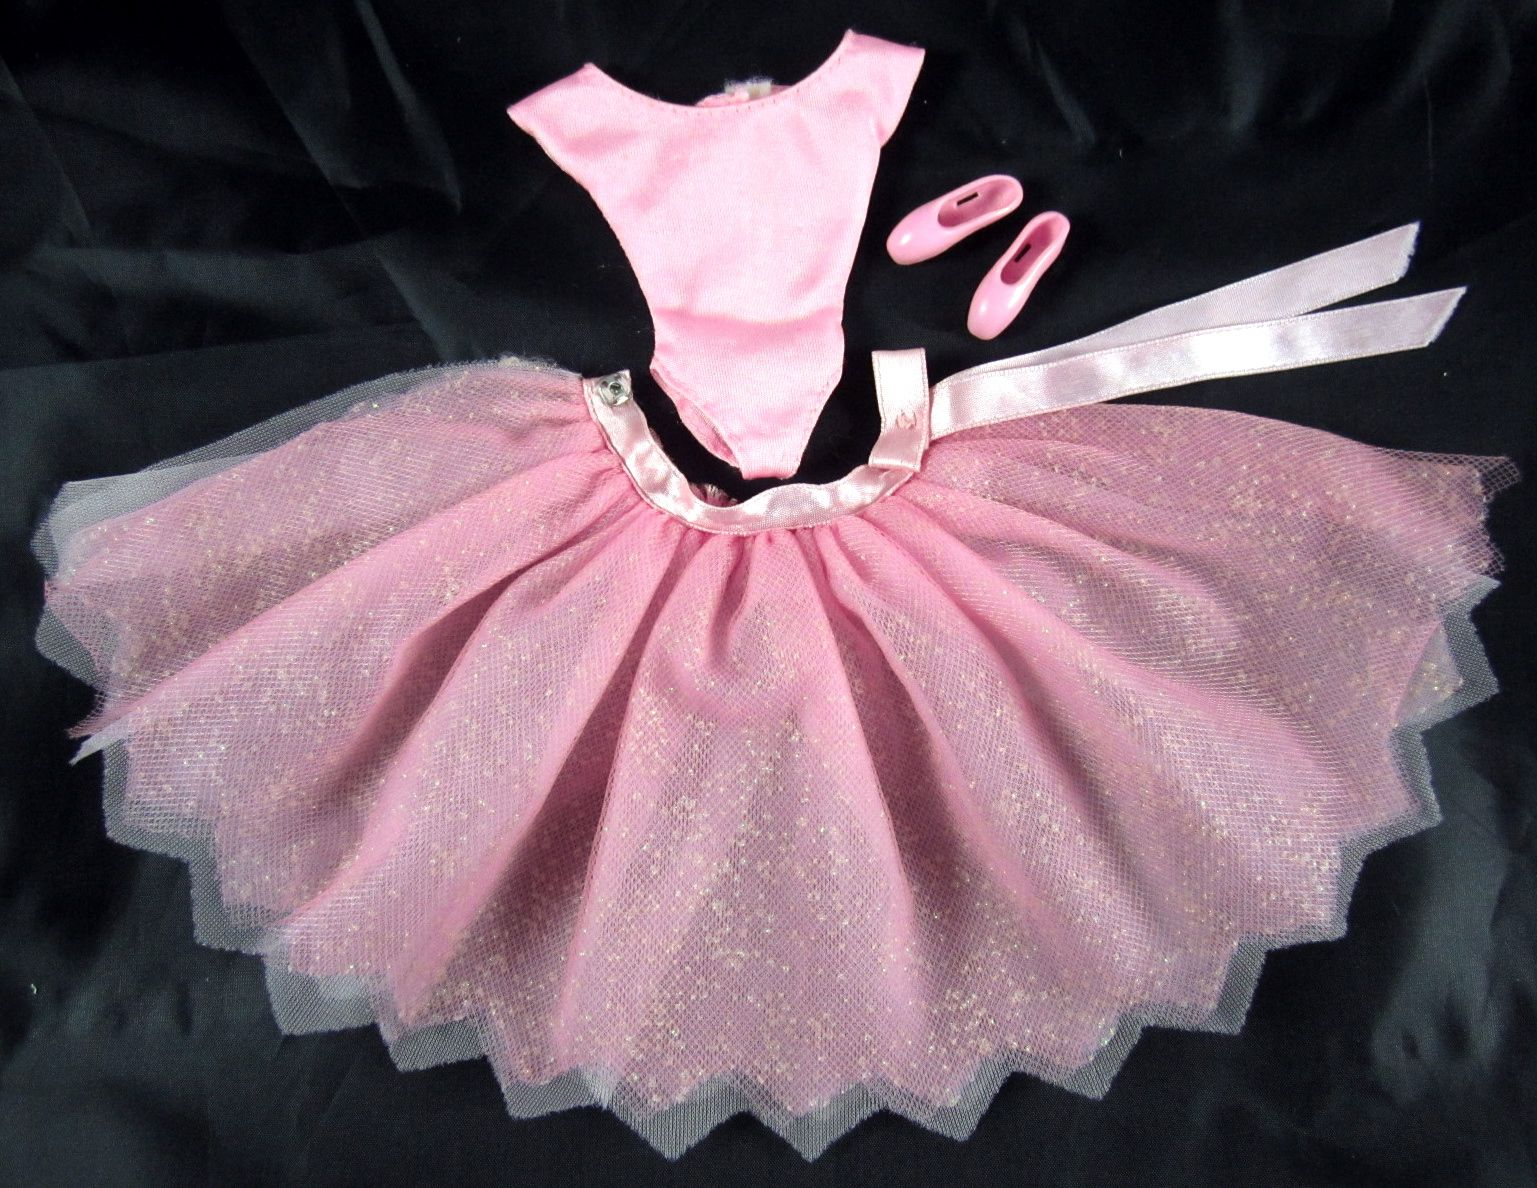 1988 Vintage Barbie S Doll Clothing My First Barbie Ballerina Outfit 1788 Barbie Dress Pattern Barbie Clothes Ballerina Outfit